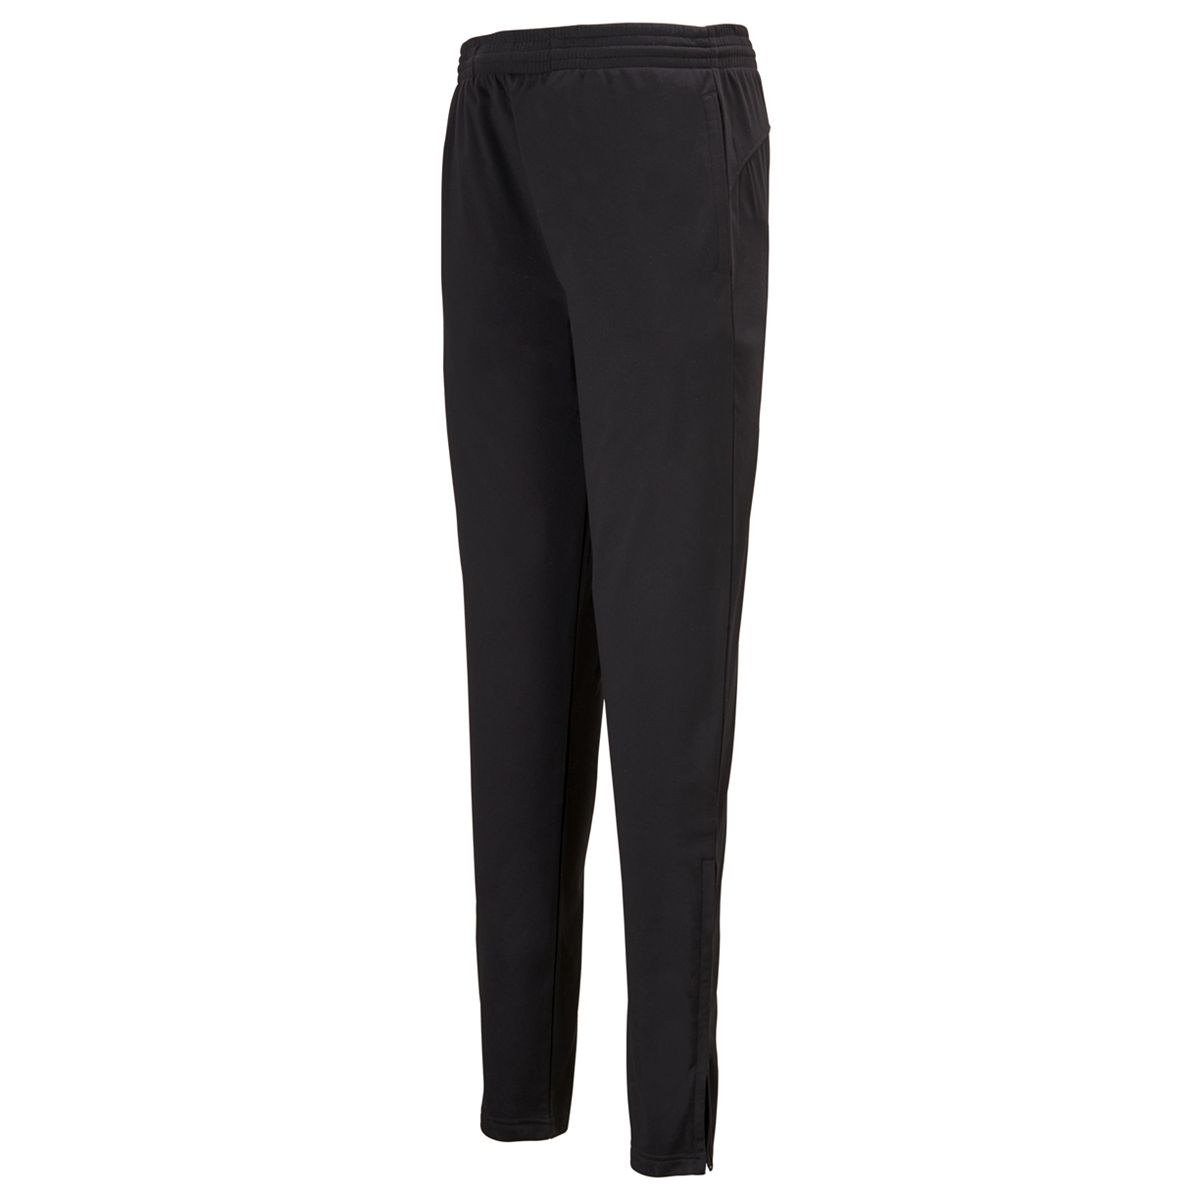 Augusta Youth Tapered Leg Pant Black L - image 1 of 1